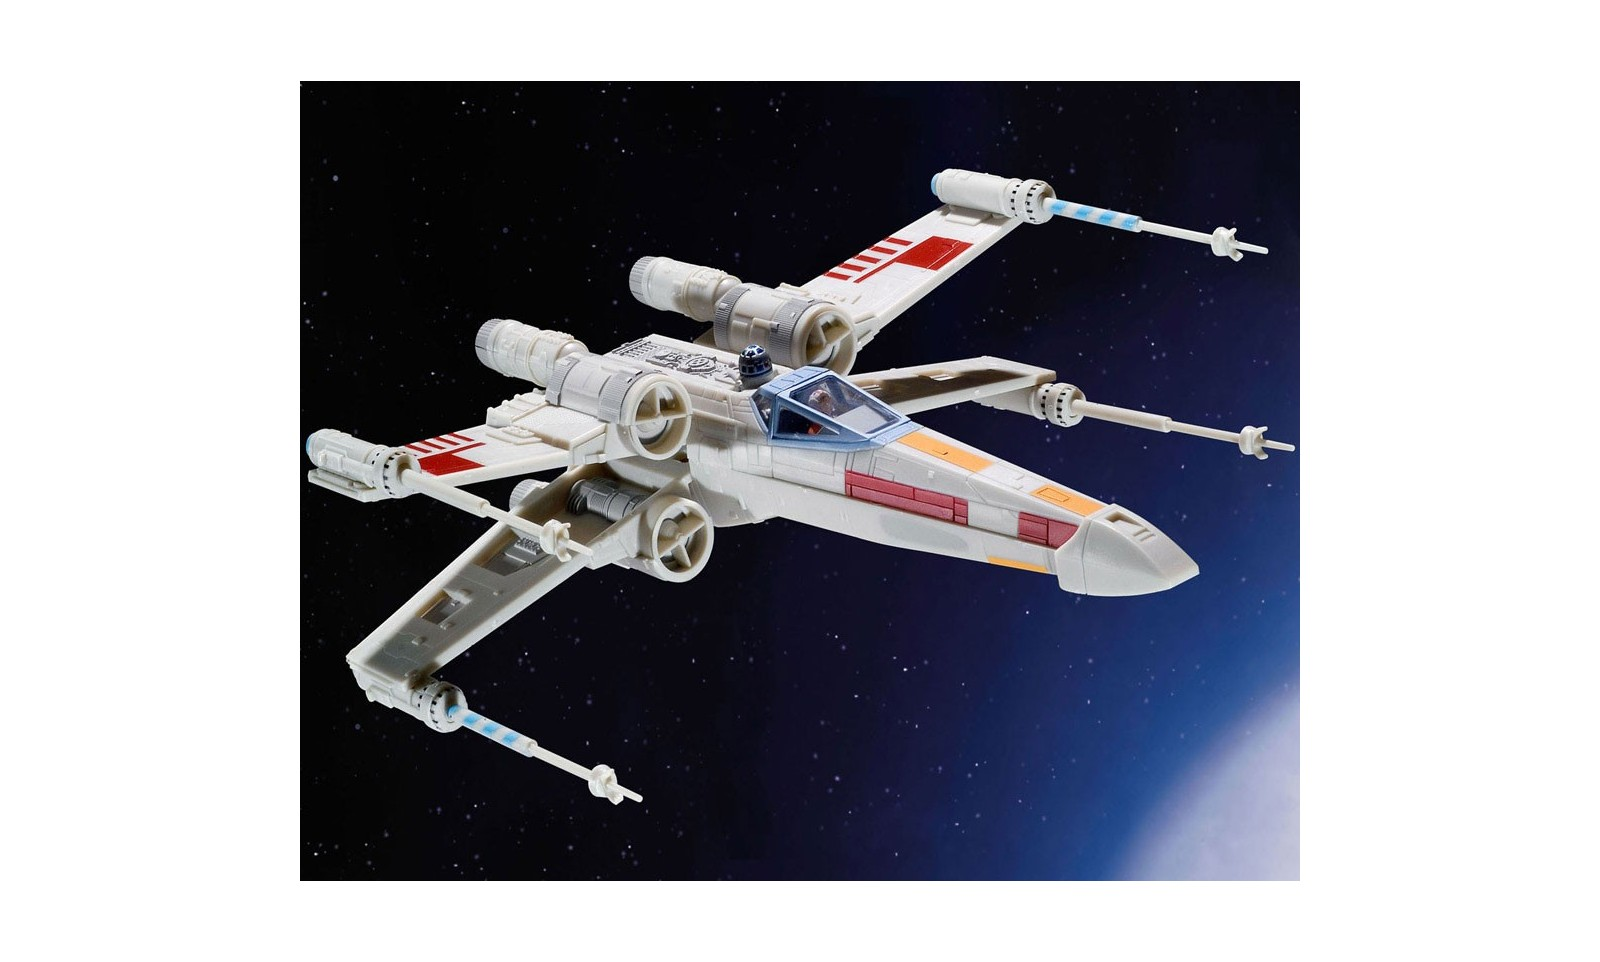 Star wars maquette vaisseau luke skywalker x wing fighter 22 cm r plique film cin ma - Vaisseau star wars anakin ...